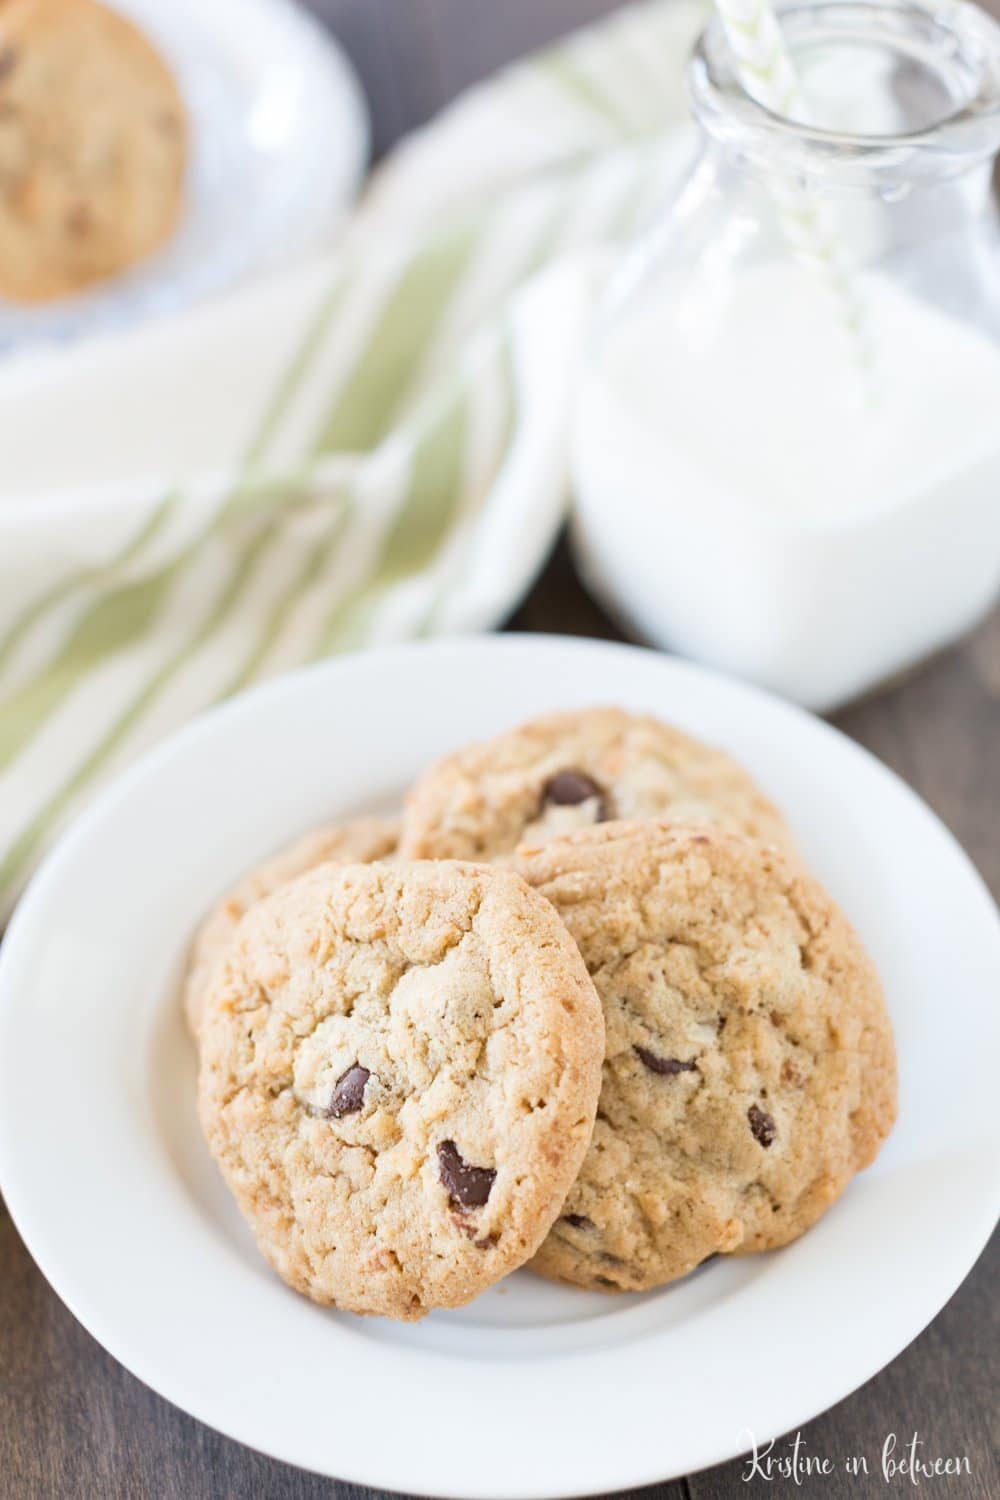 You'll love these easy chocolate chip coconut cookies that you can make in one-bowl and in under 30 minutes!